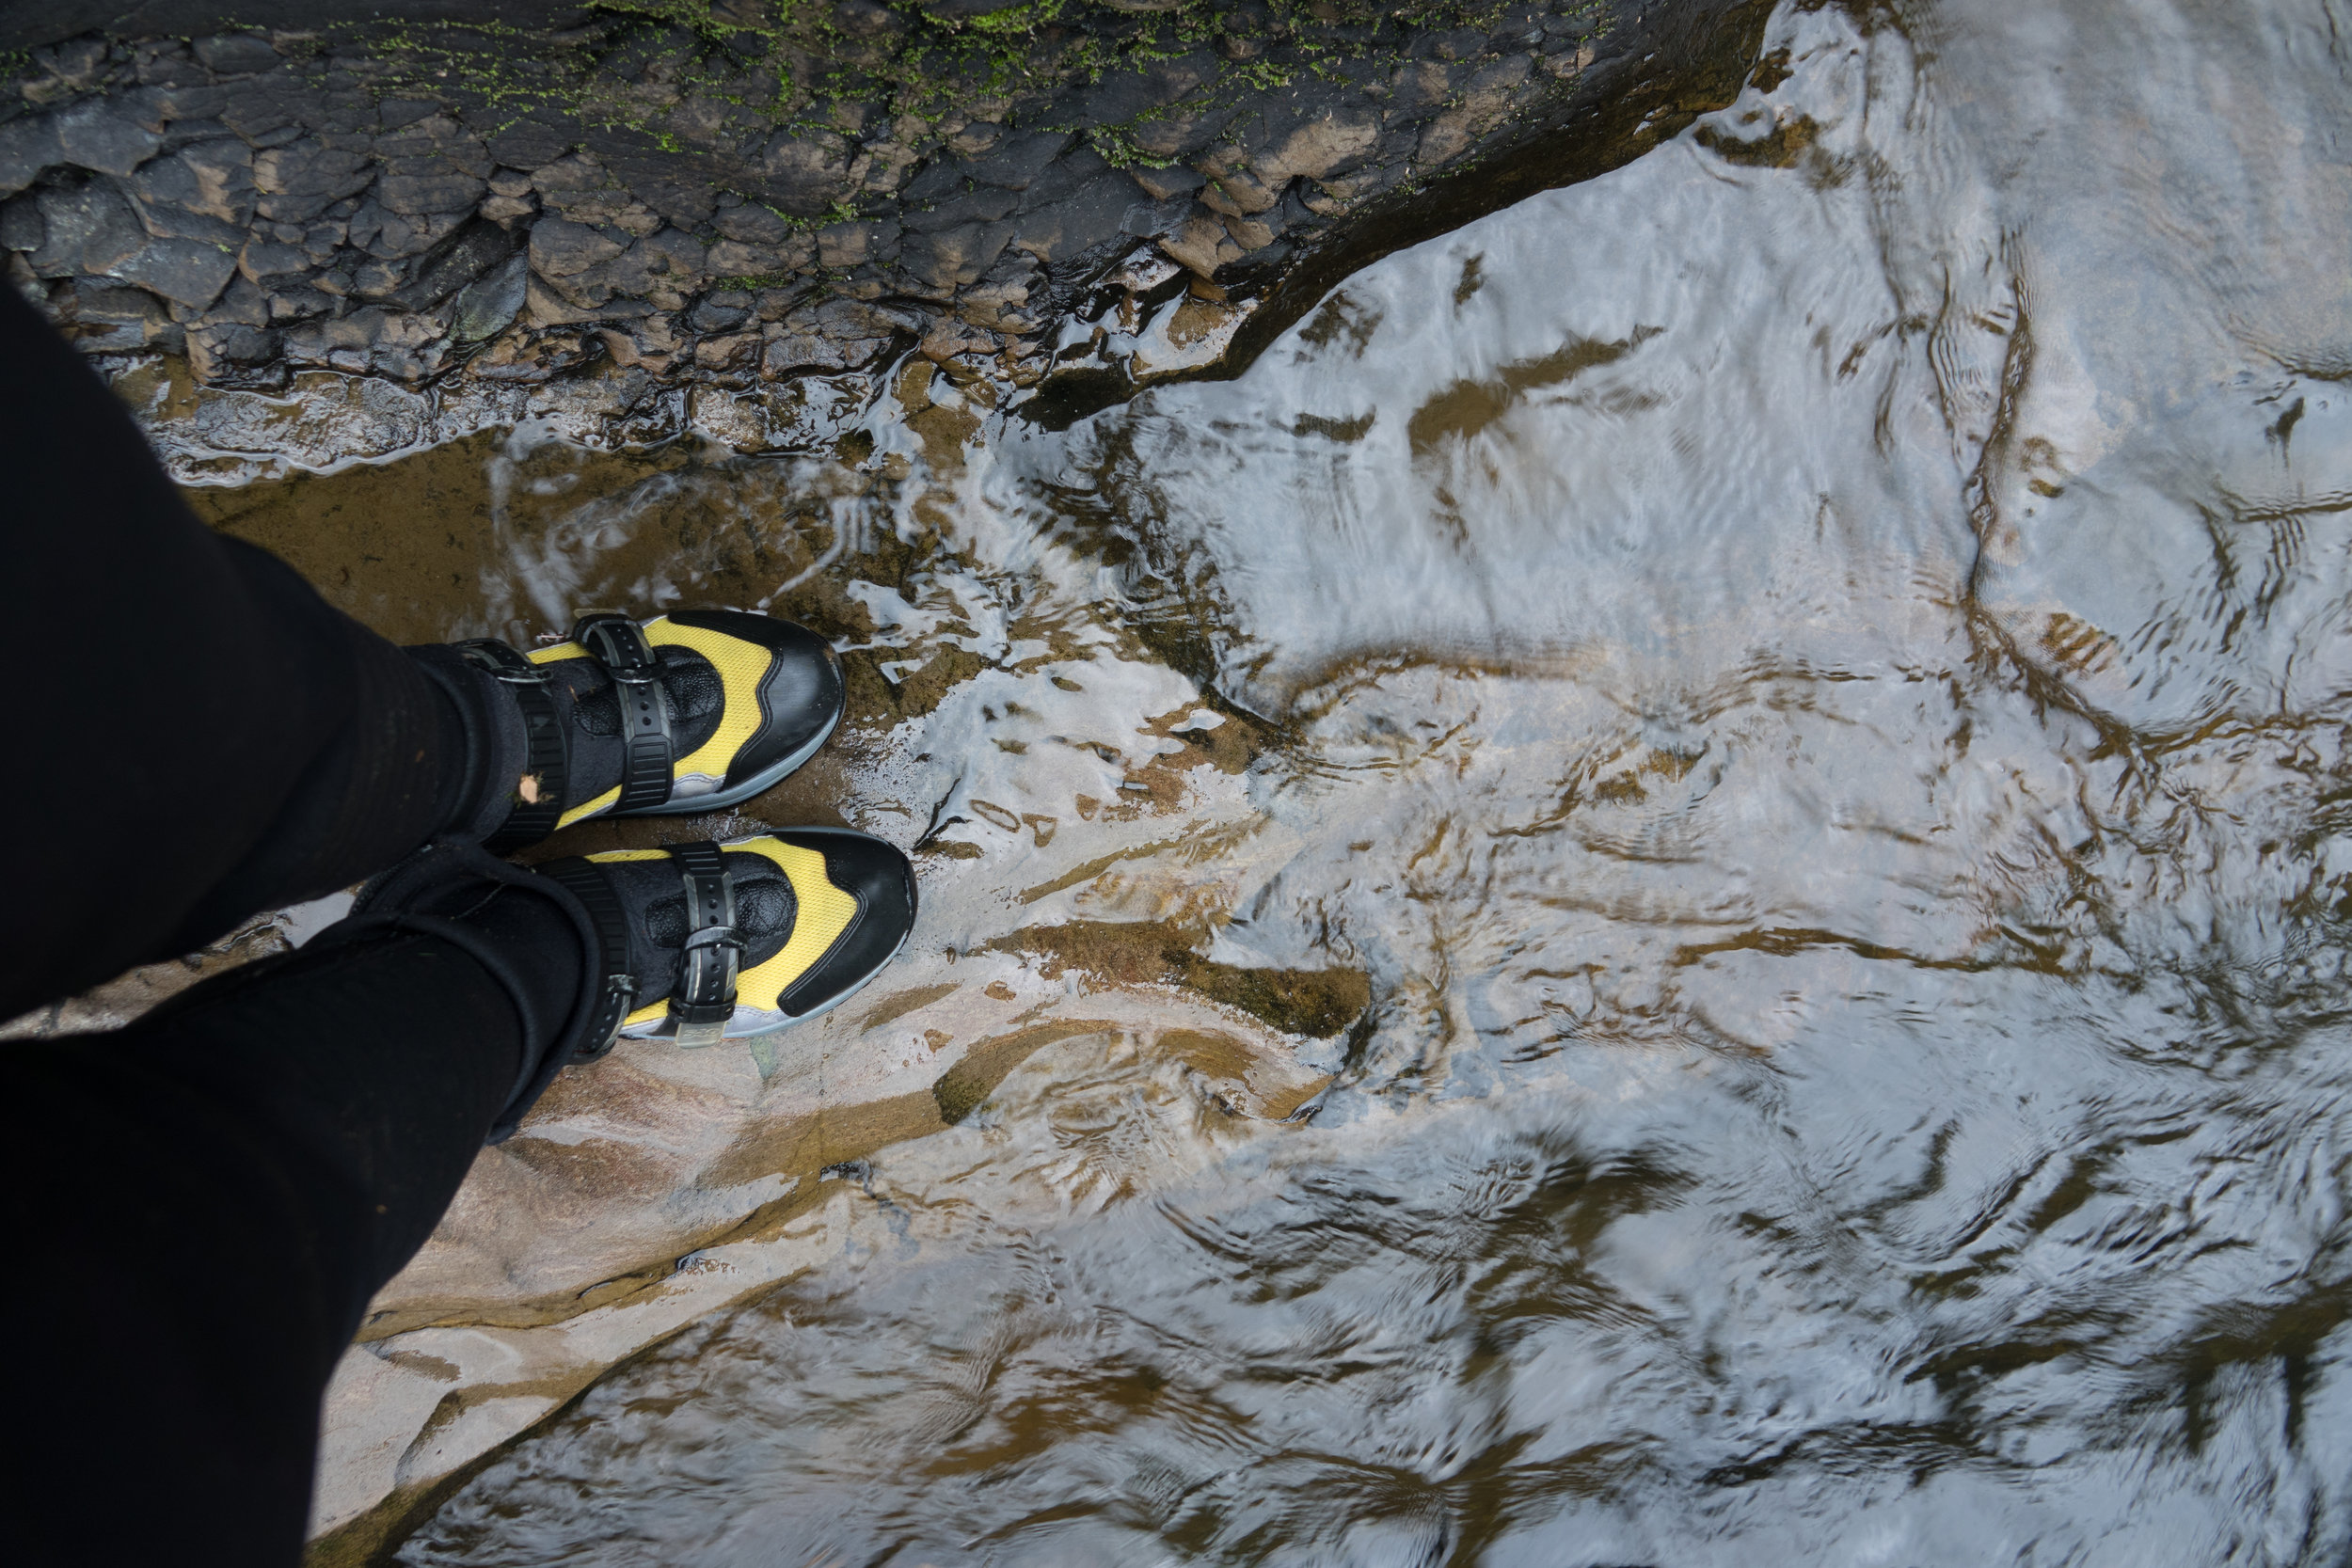 My Canyoneering shoes on a sandstone shelf in the Green River Gorge. In 2016 I hiked the entire twelve mile Green River Gorge.